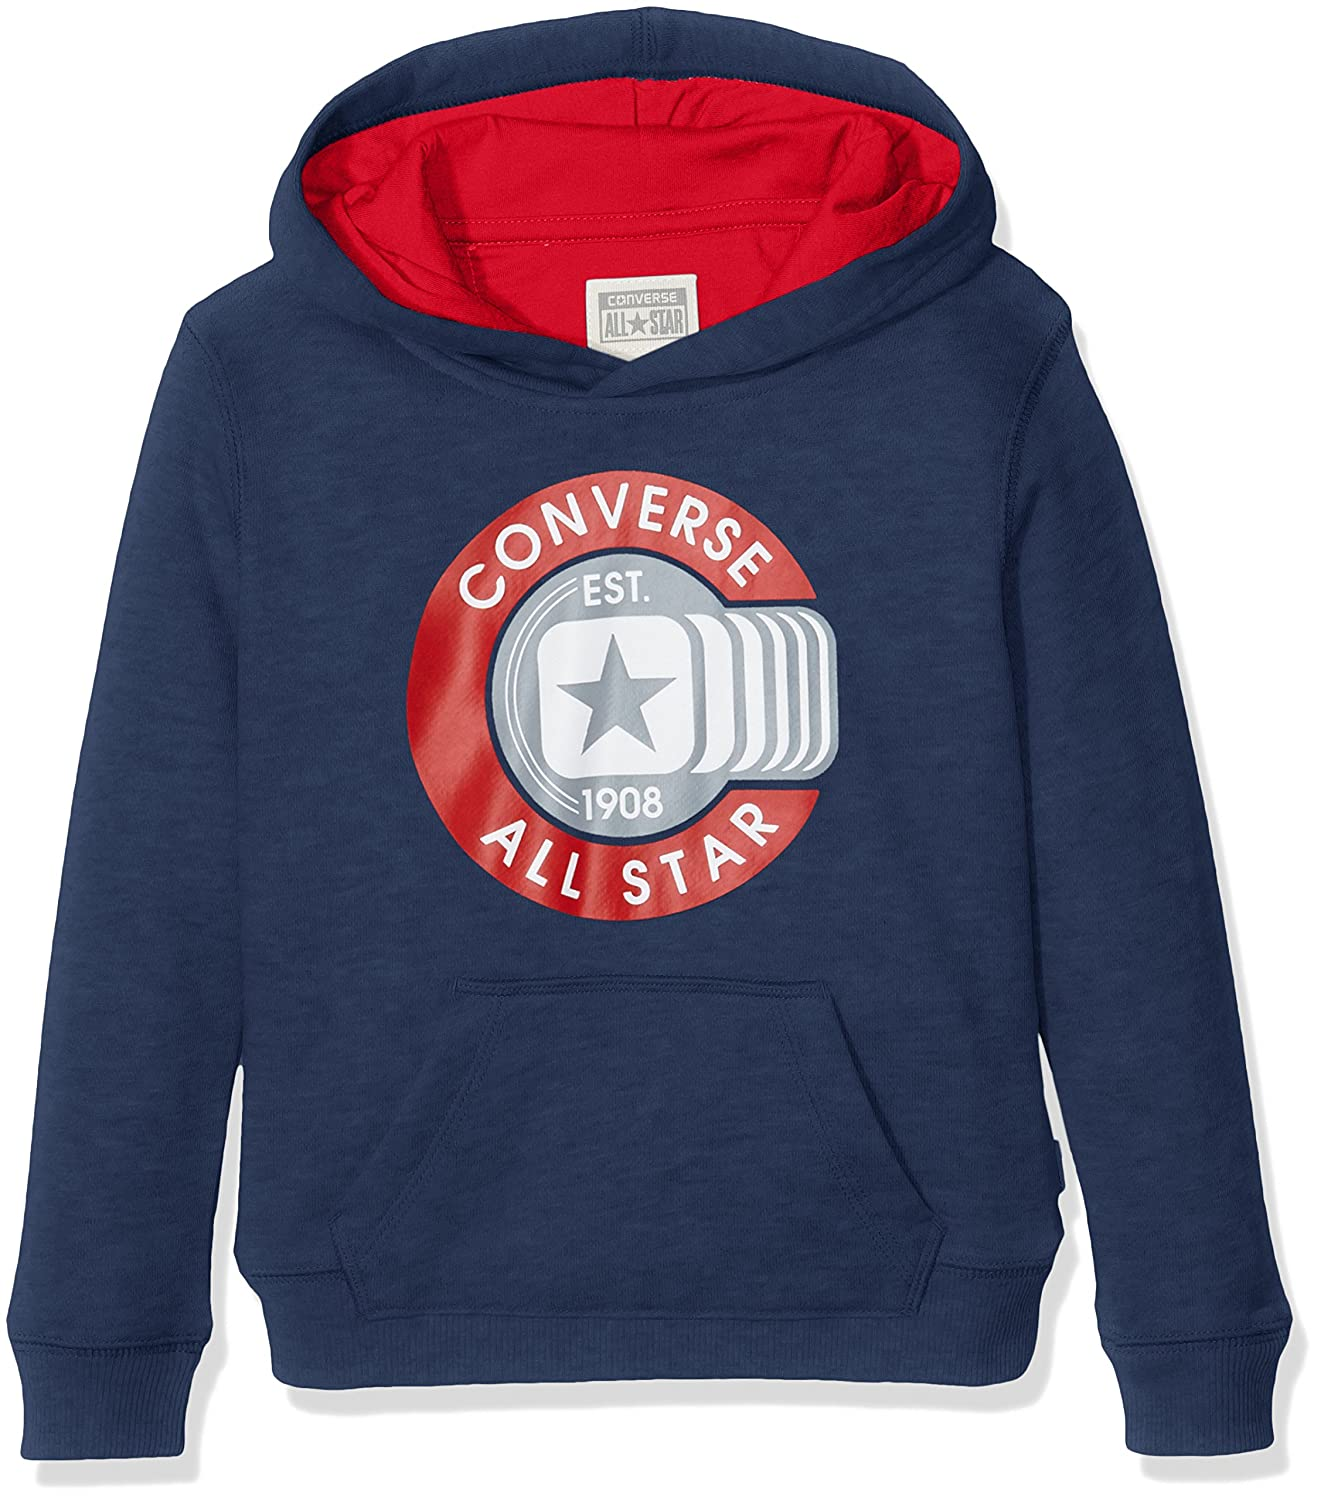 Converse Boy's Graphic Pull Over Hoodie Blue (All Star Navy) CNV6363S